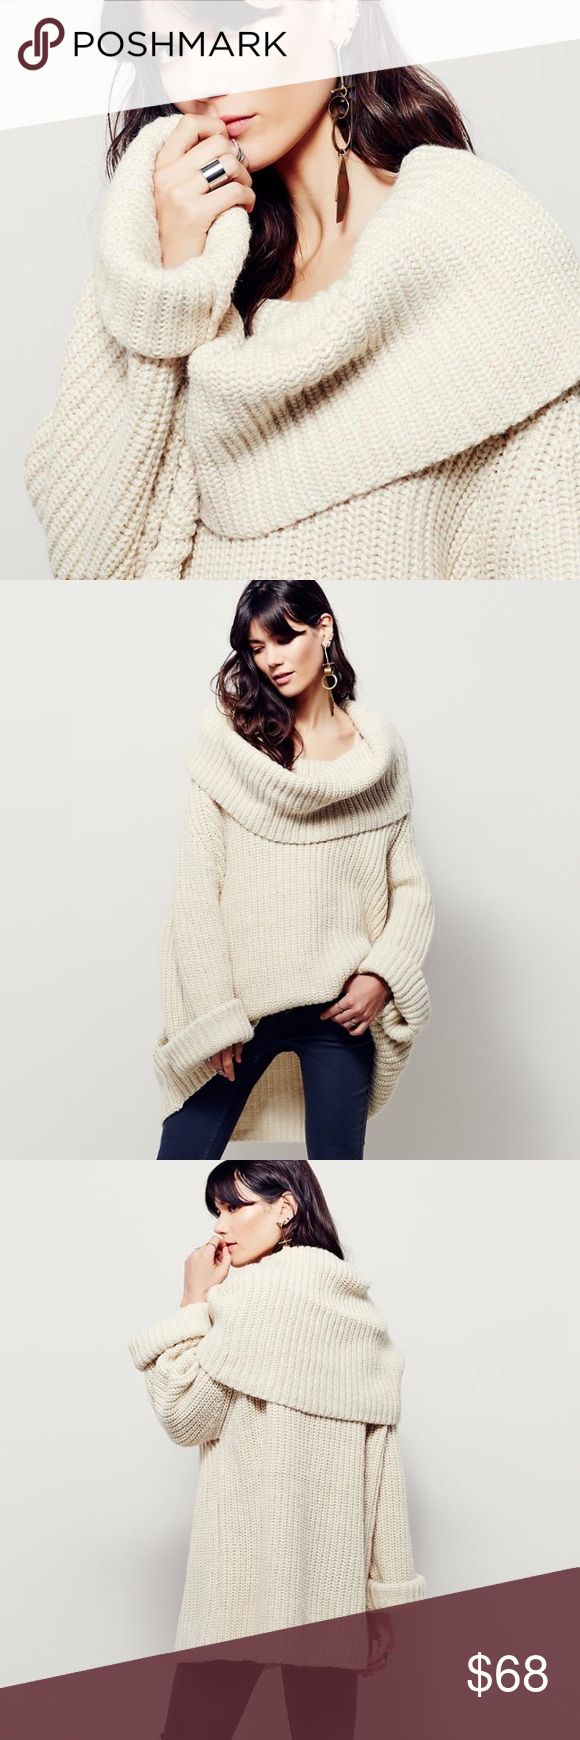 """Lofty Oversized Sweater TOP Extreme Cowlneck NEW BRAND NEW!! Oversized, alpaca-blend tight-knit pullover featuring an exaggerated cowl neckline. Slouchy, relaxed silhouette for an effortless fit. 🌟Similar style by Free People.🌟  *14% Polyamide *15% Alpaca *15% Wool *56% Acrylic   S: Bust: 51.2""""/Length: 28.2"""" M: Bust: 52.8""""/Length: 28.8"""" L: Bust: 54.3""""/Length: 29.4"""" XL: Bust: 55.9""""/Length: 30.2""""  🌟Item is Brand New, direct from the Manufacturer, & Sealed in Pkg.🌟 austin gal Sweaters"""